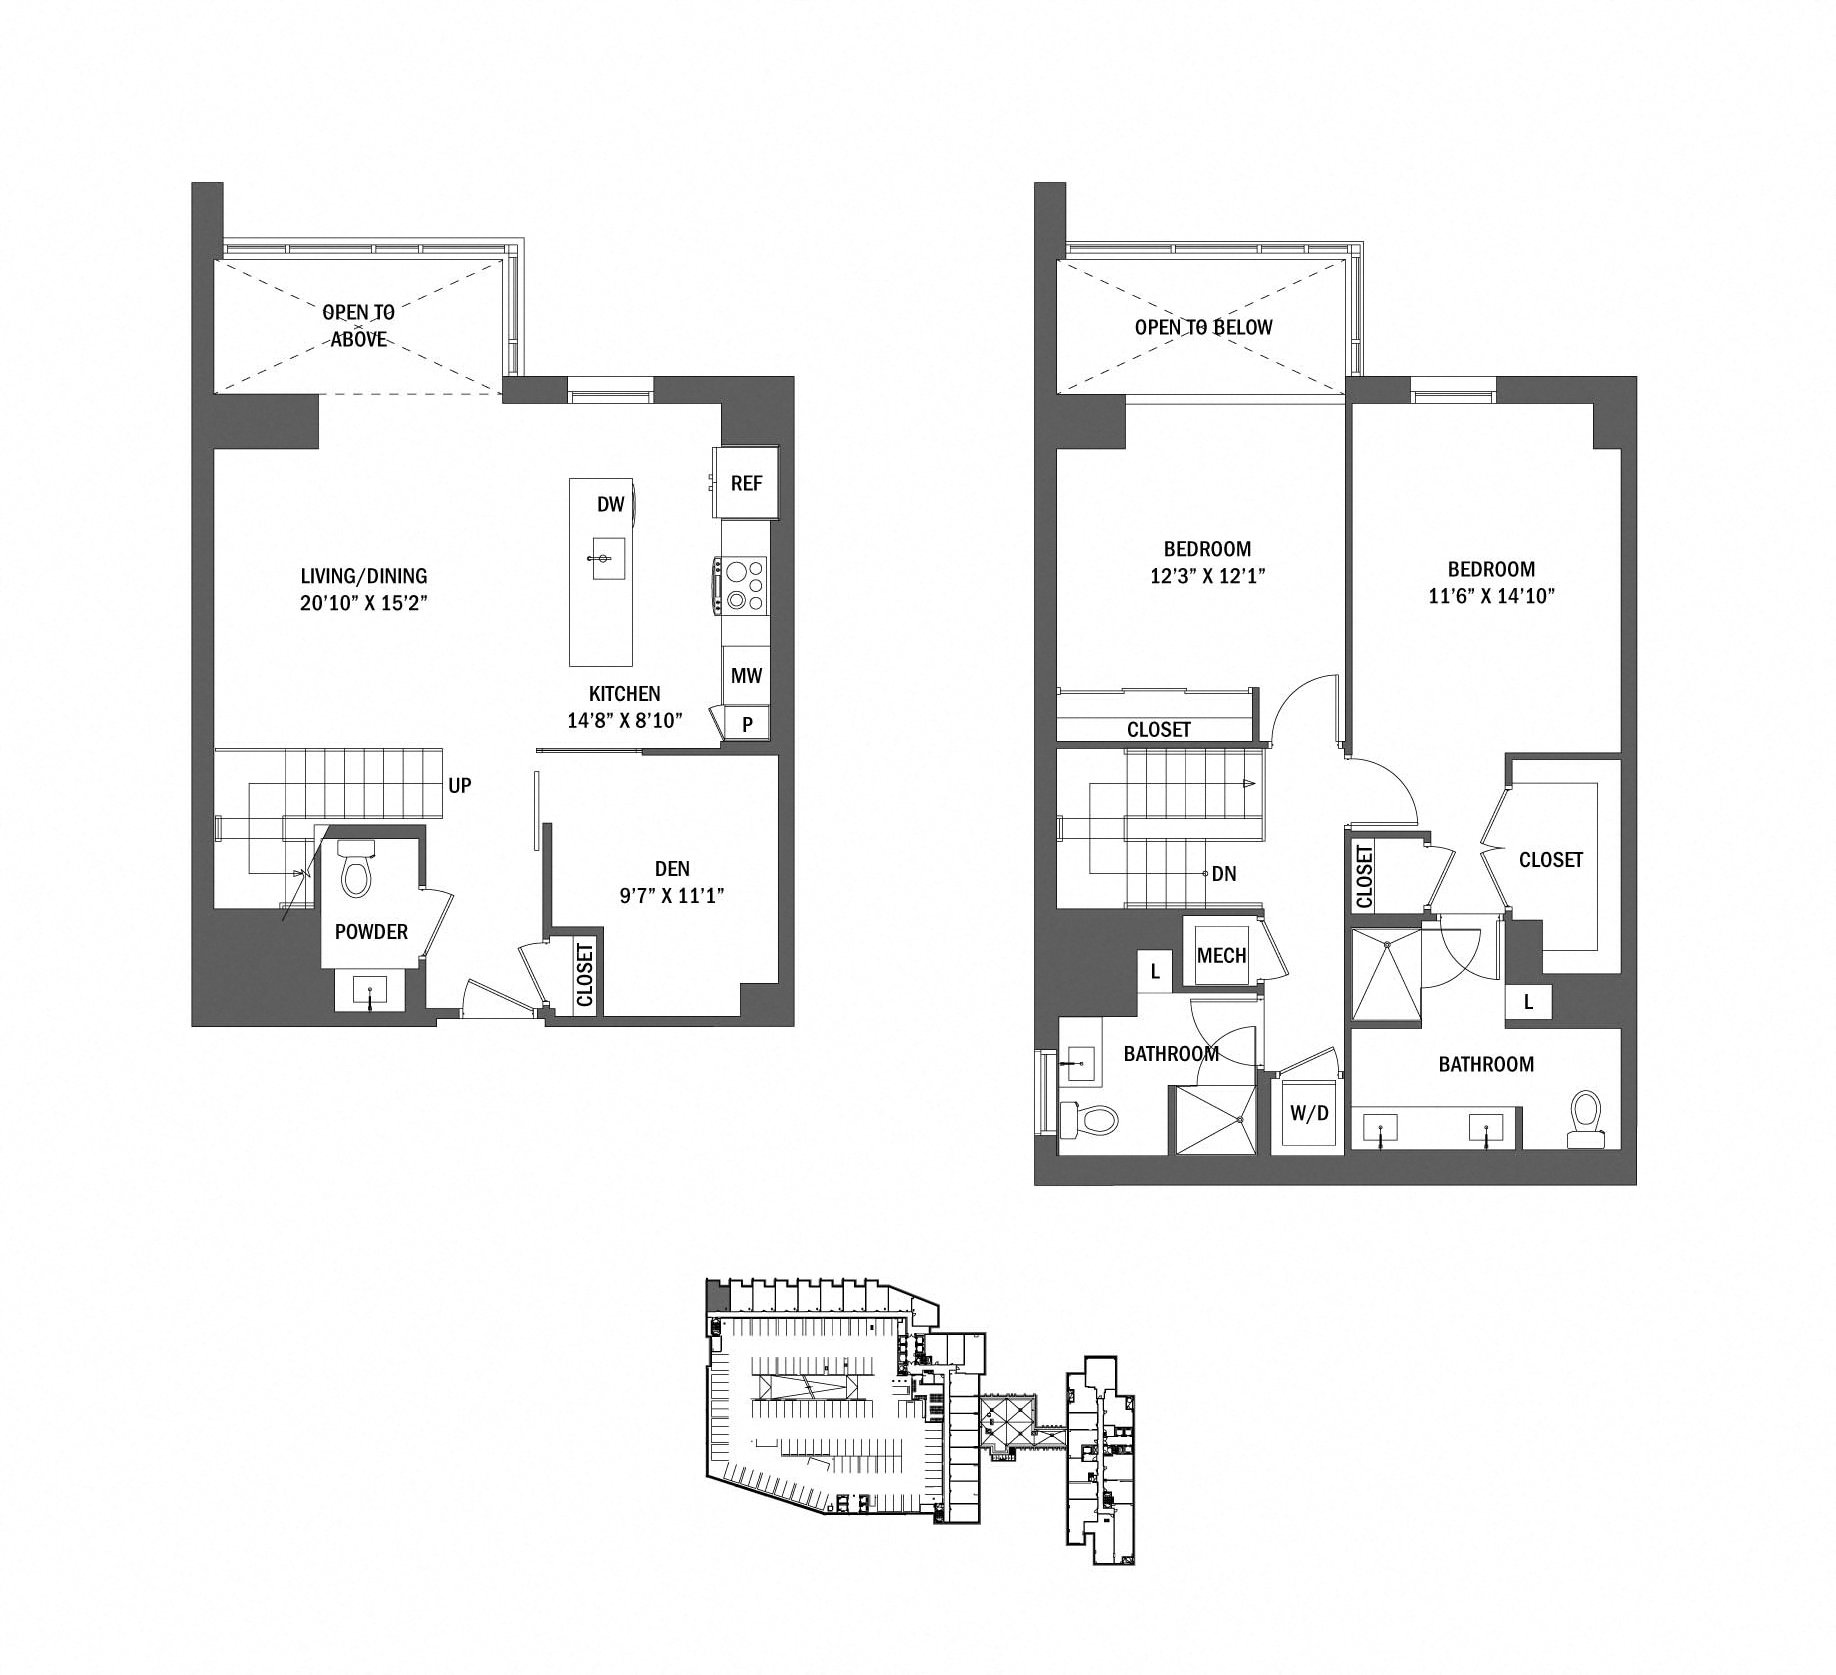 P0625338 n01 mp 2 floorplan